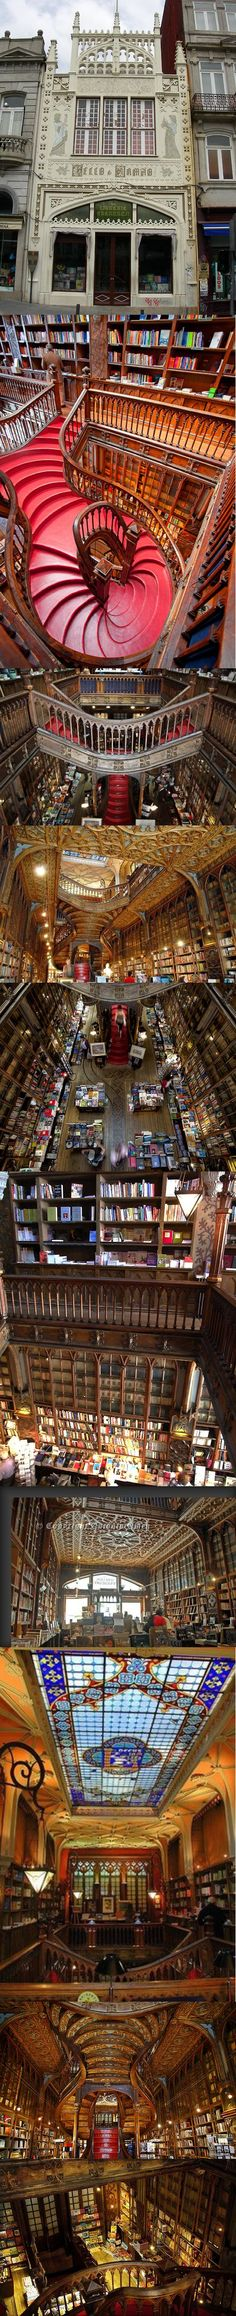 Amazing bookstore -  Livraria llello & Iirmão in Porto, Portugal  (via classiclibrarian)